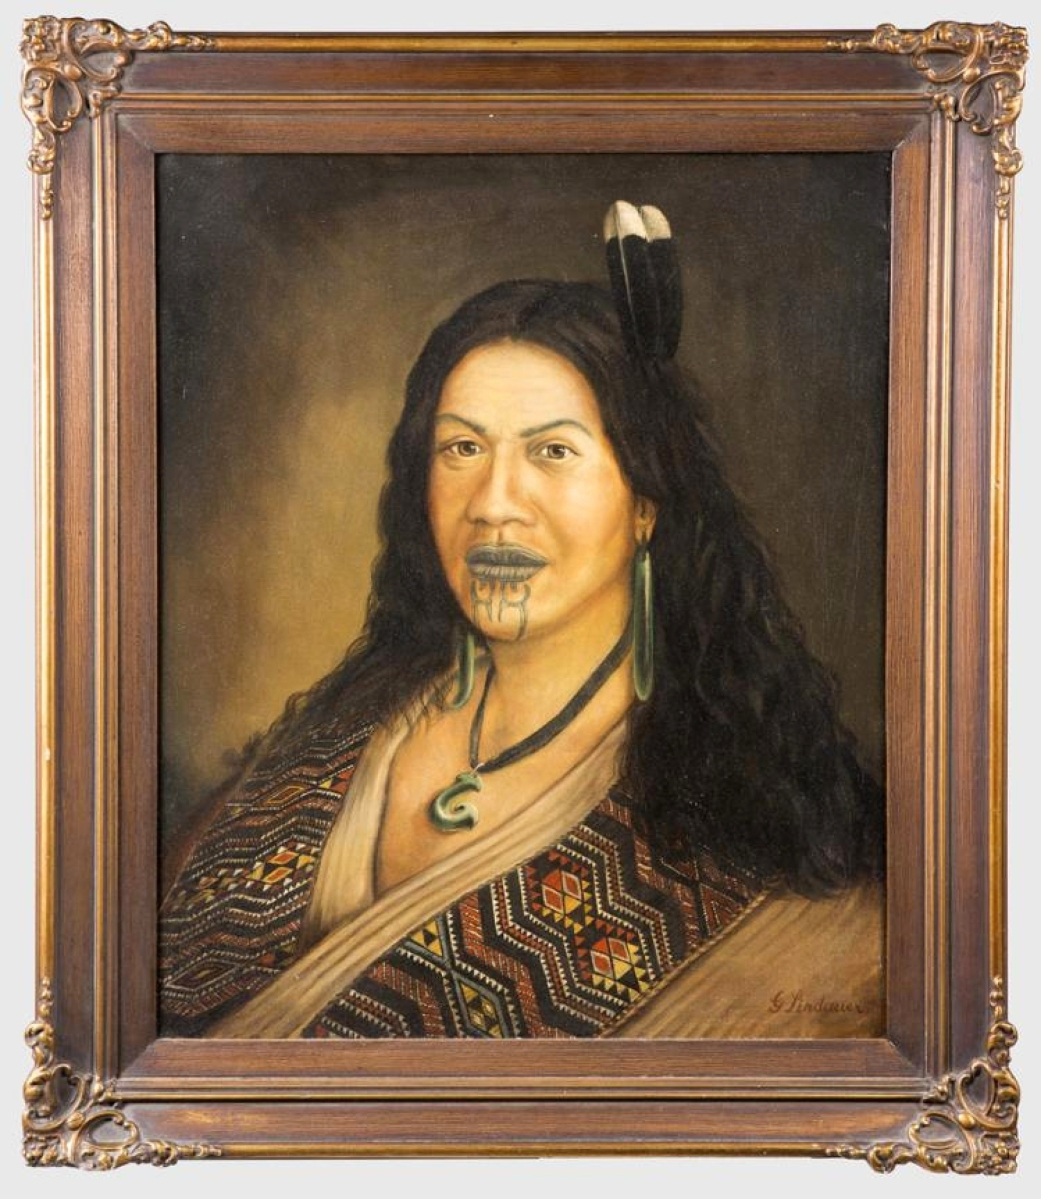 The highest price of the sale was earned by an unusual, striking portrait of a Maori princess painted by Gottfried Lindauer (New Zealander, 1839-1926). The artist was known for his paintings of Maori leaders and village life, many of which hang in museums in New Zealand. A bidder in Australia paid $21,600 for the painting.